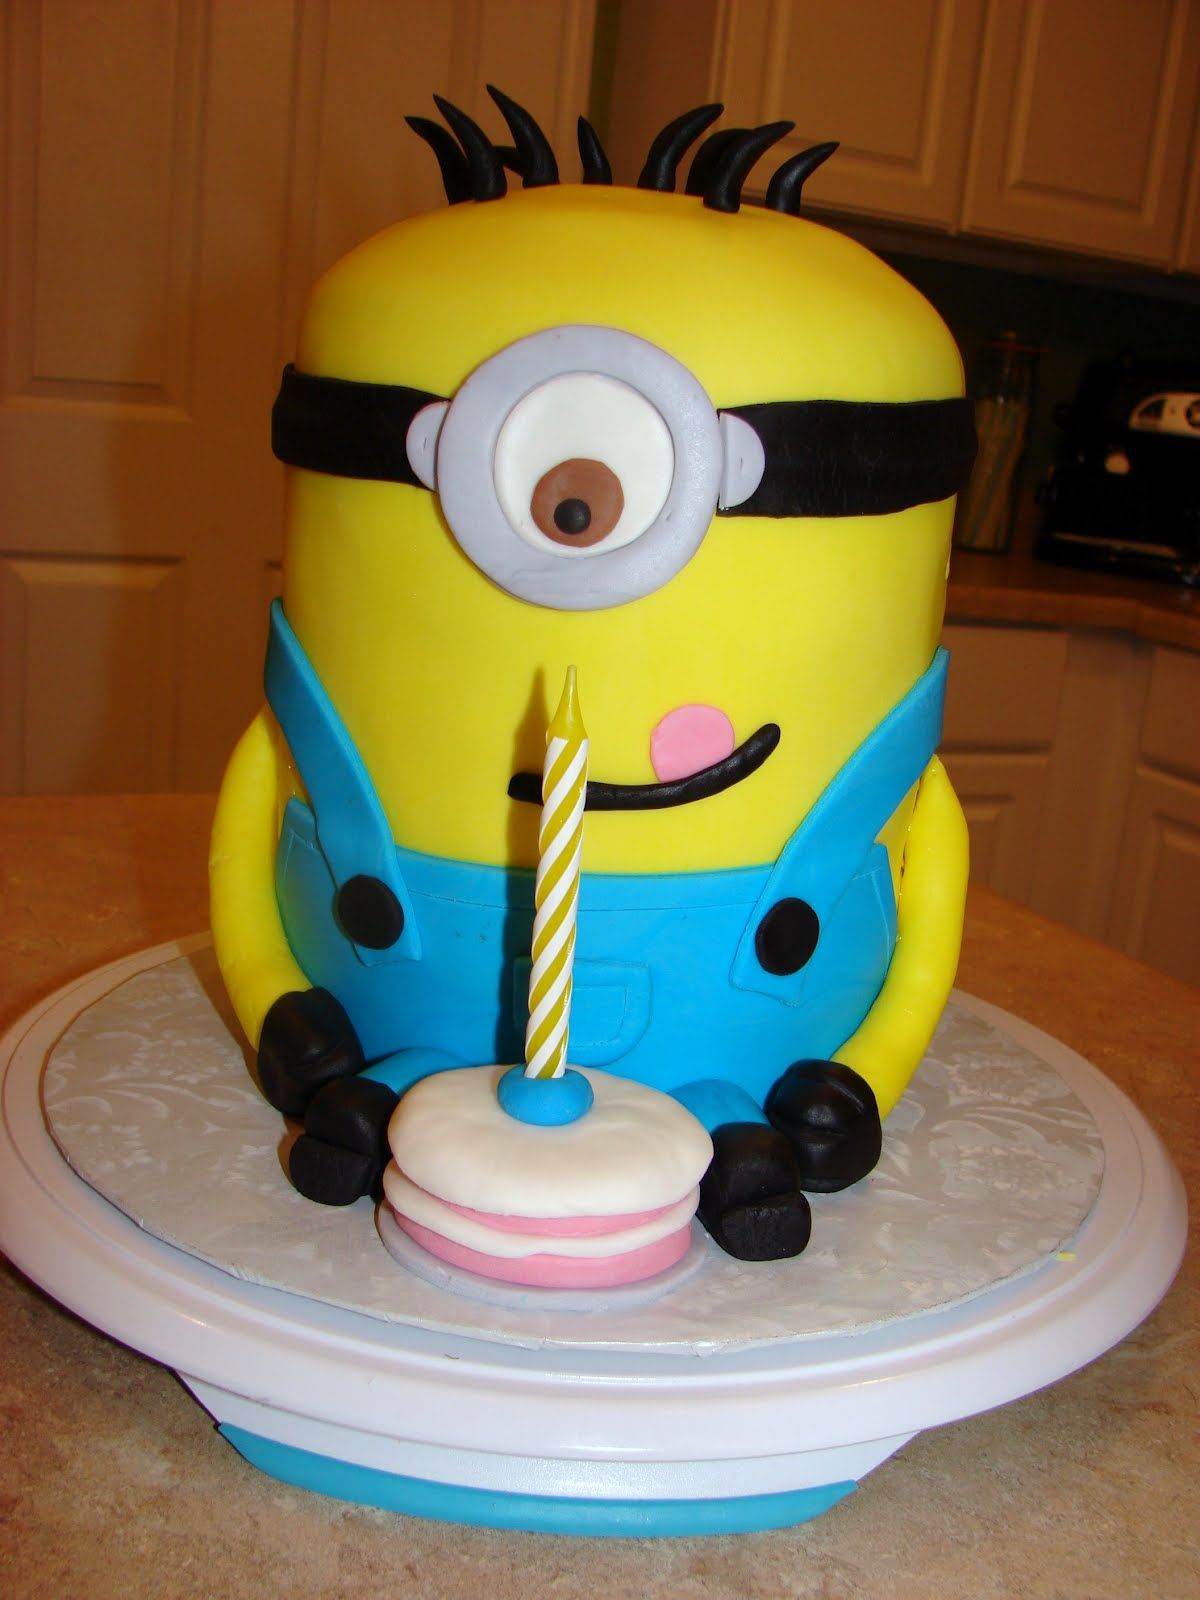 Cake Images Of Minions : Ipsy Bipsy Bake Shop: Minion Cake!!